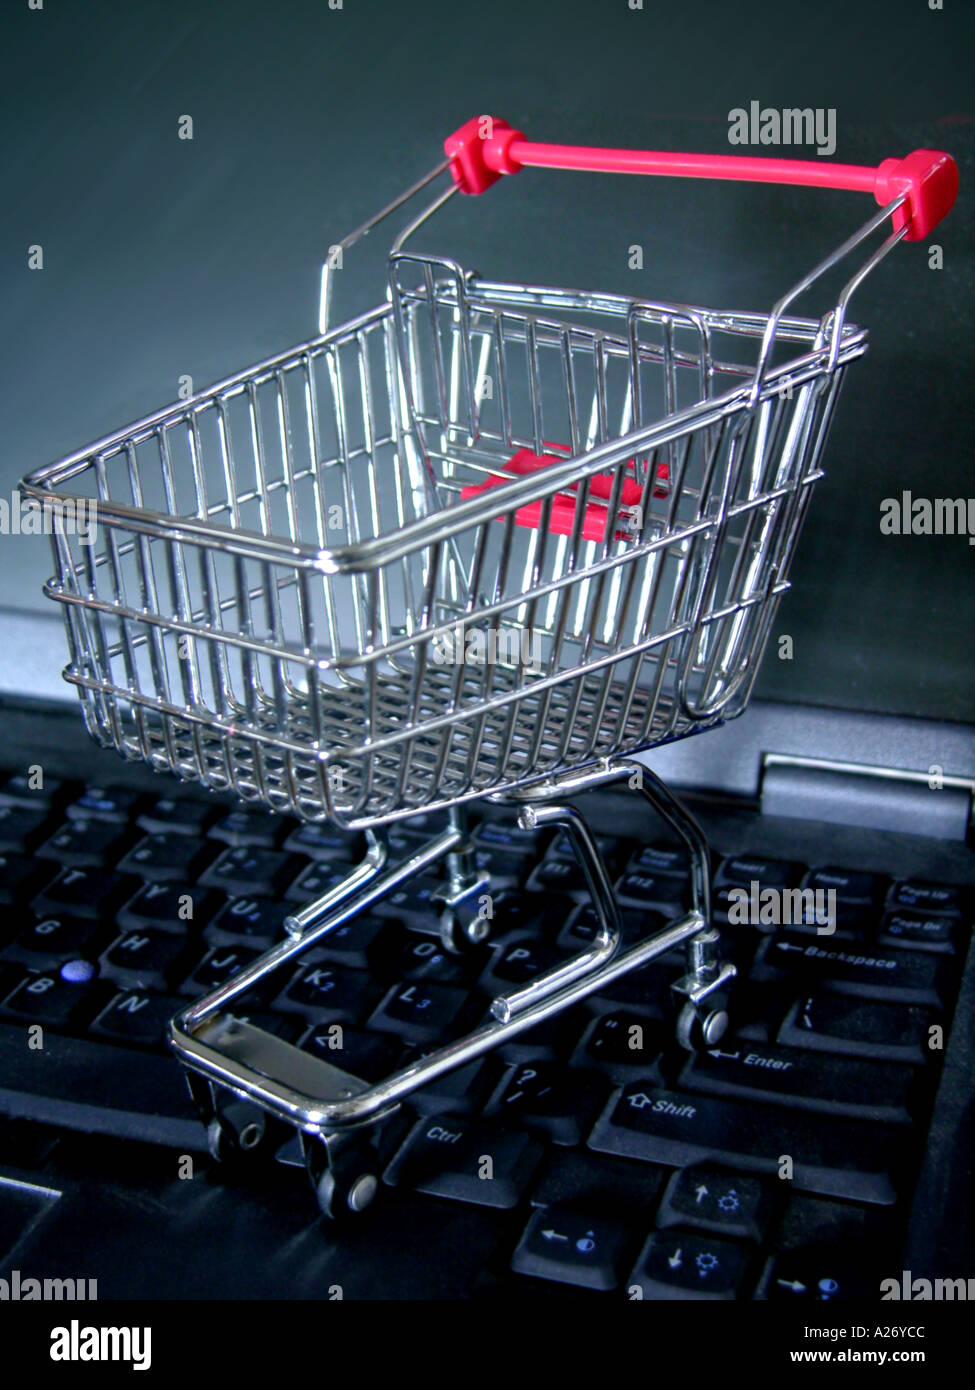 Online Shopping Technology - Stock Image